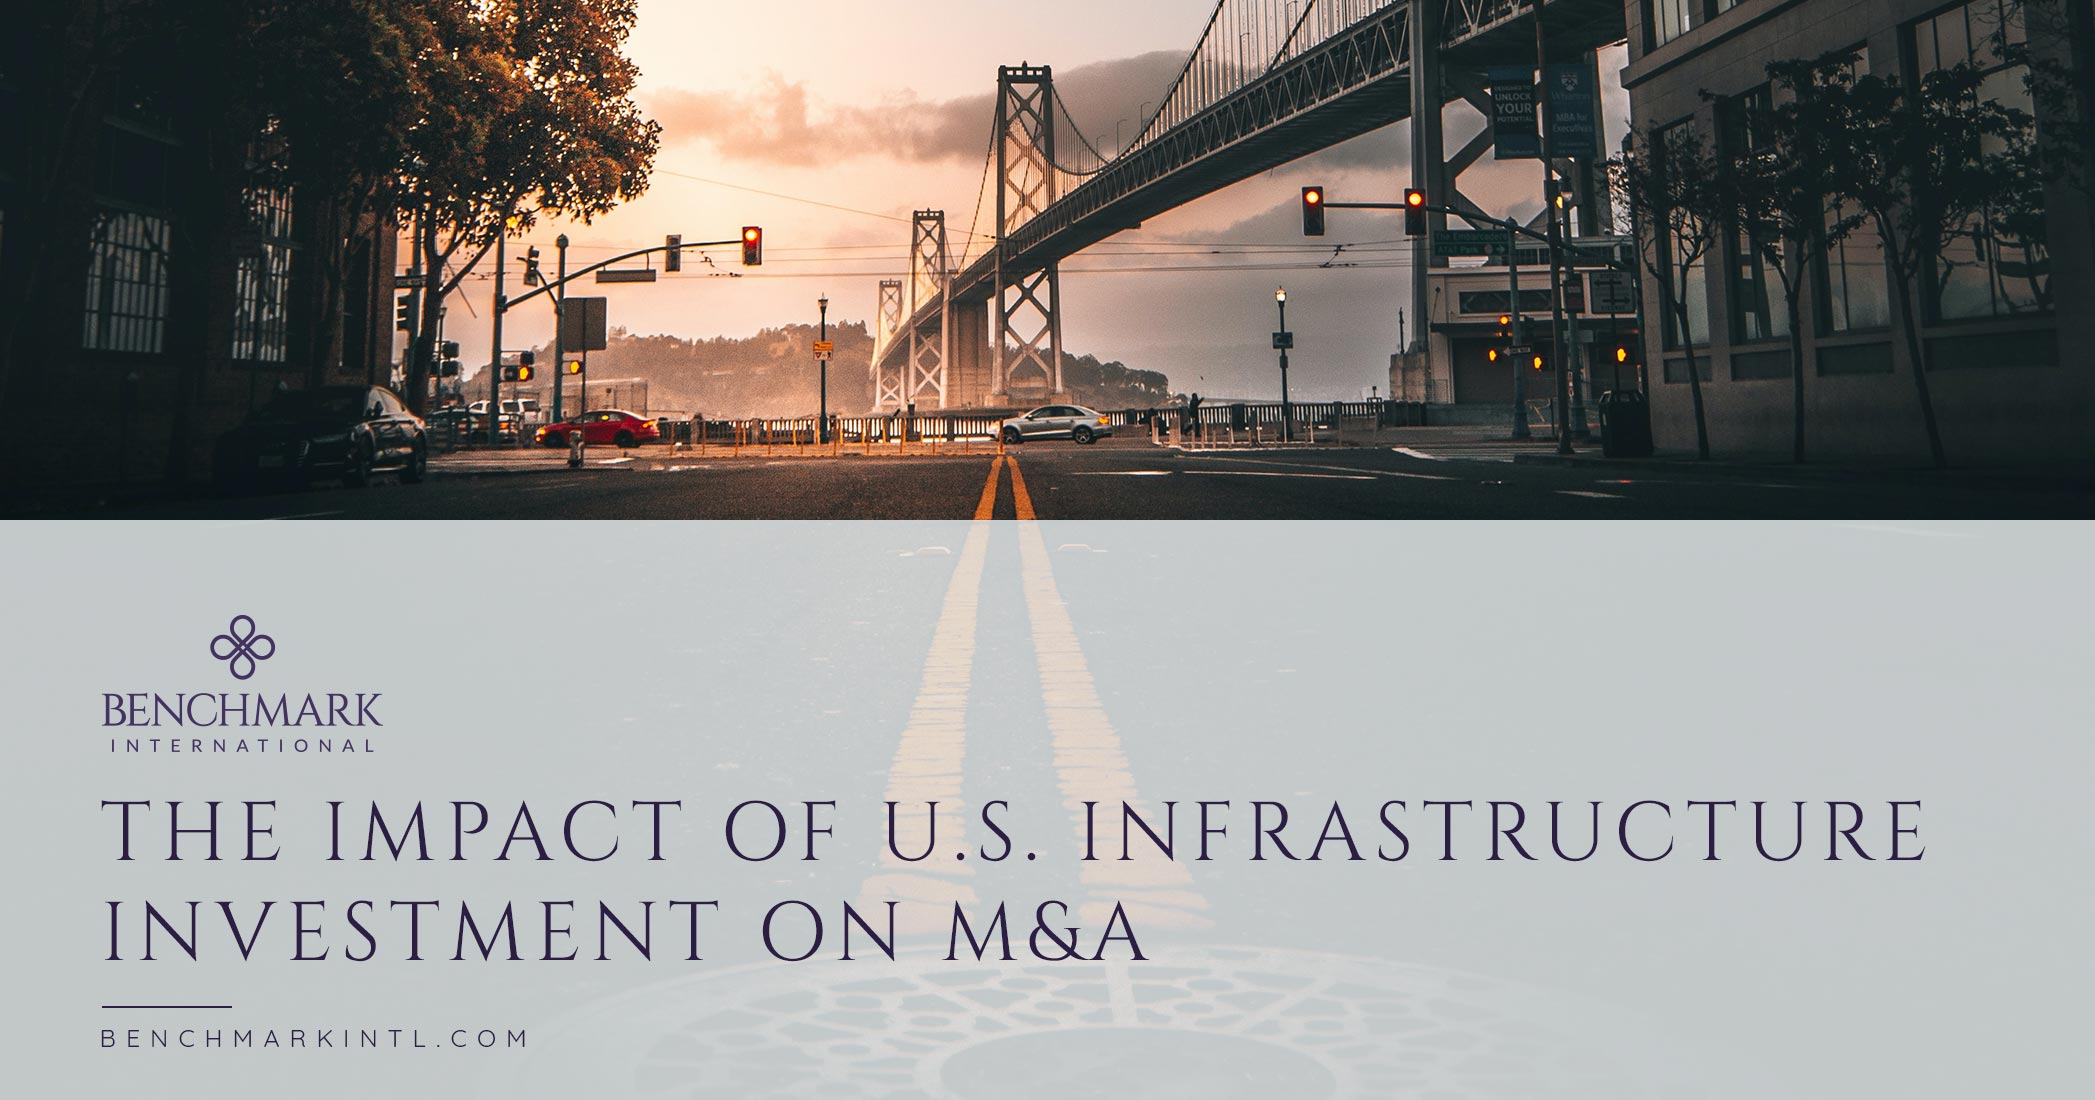 The Impact of U.S. Infrastructure Investment on M&A